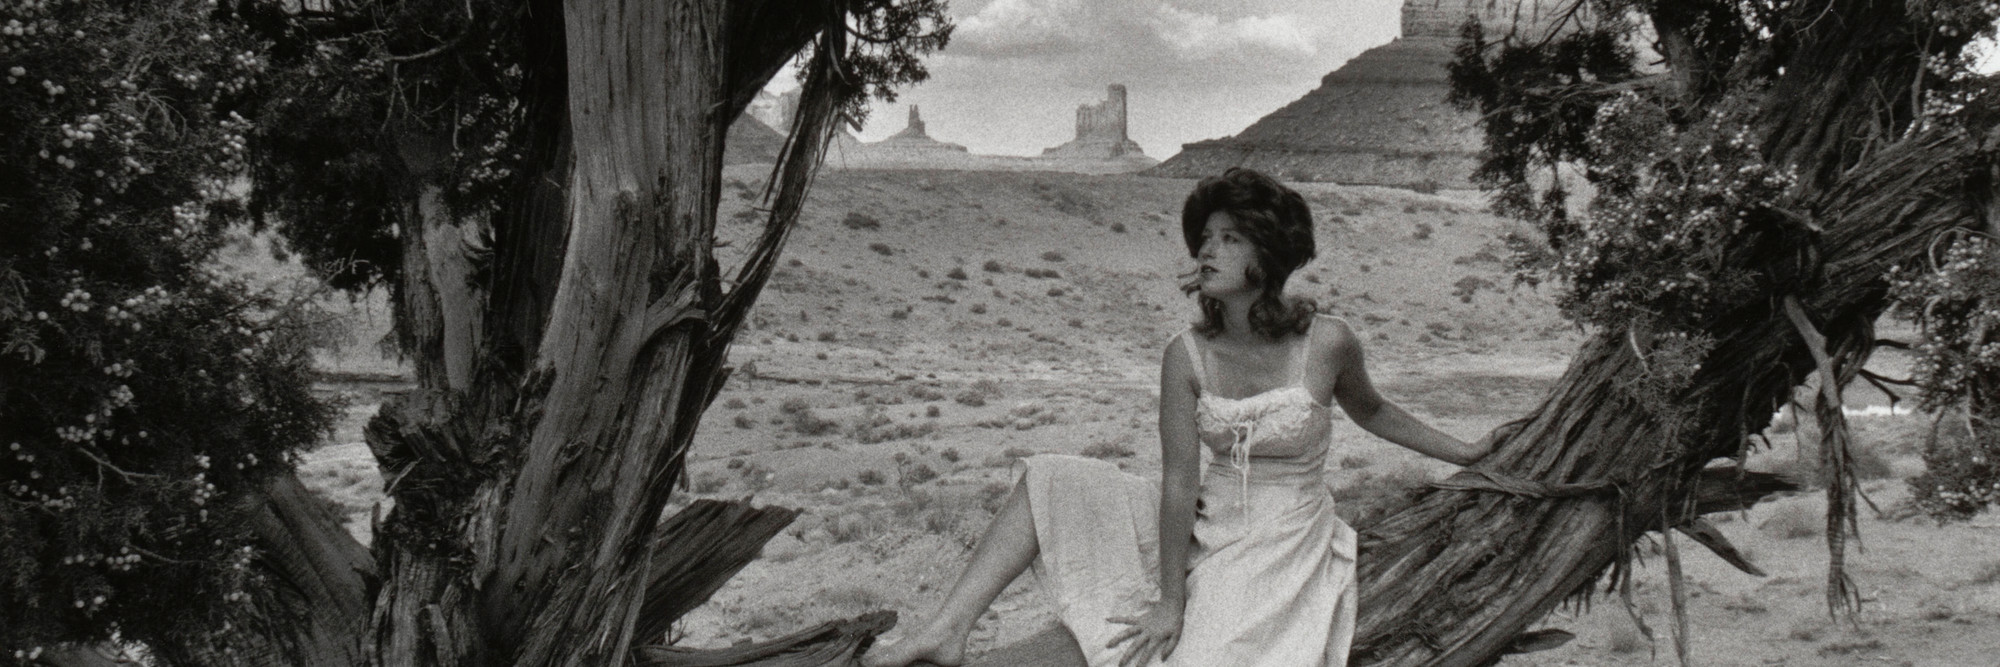 Cindy Sherman. Untitled Film Still #43. 1979. Gelatin silver print. 7 9/16 × 9 7/16″ (19.2 × 24 cm). The Museum of Modern Art, New York. Acquired through the generosity of Sid R. Bass. © 2008 Cindy Sherman